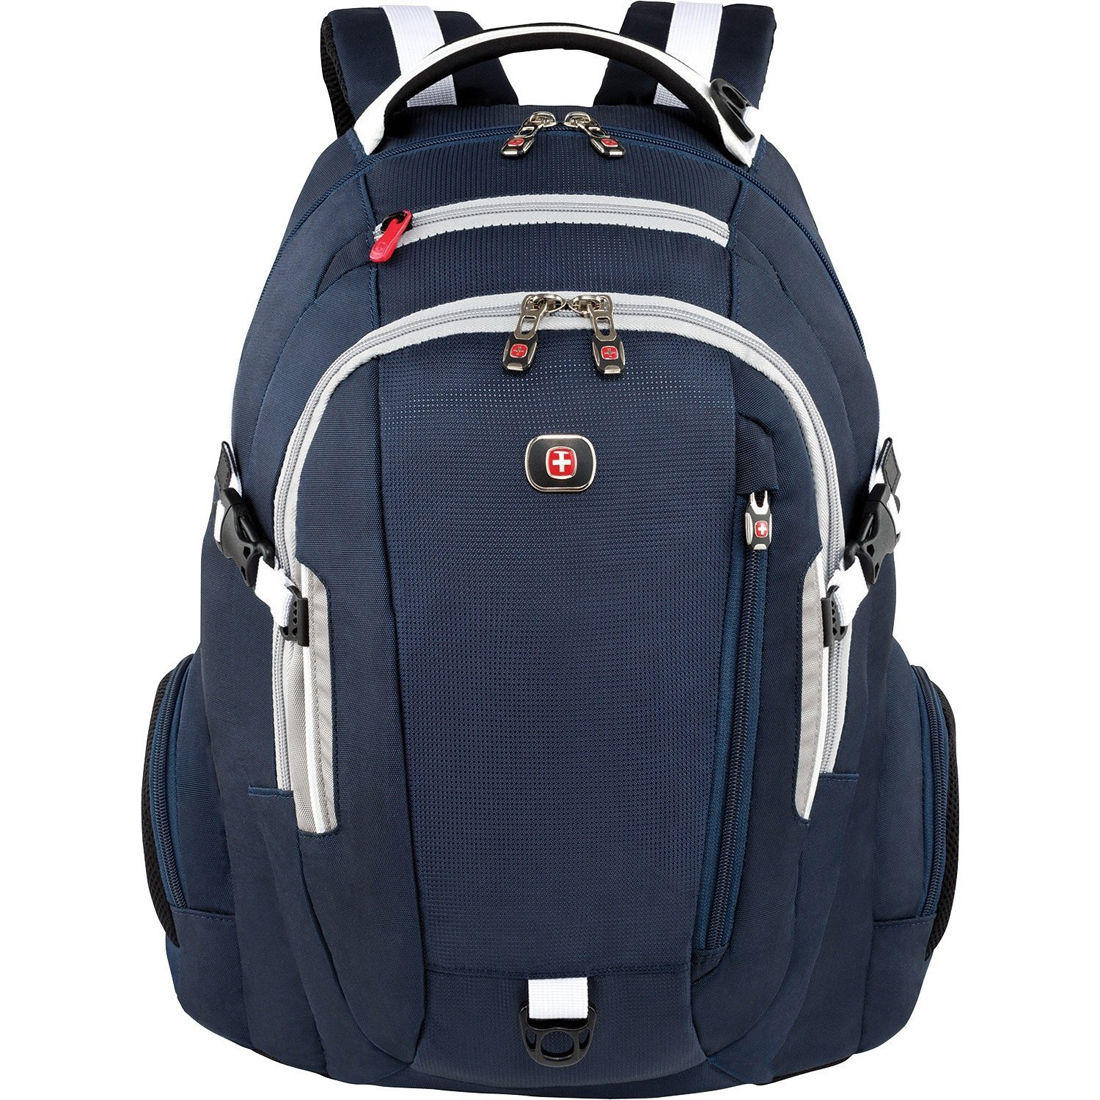 Wenger Swiss Army Commute Backpack